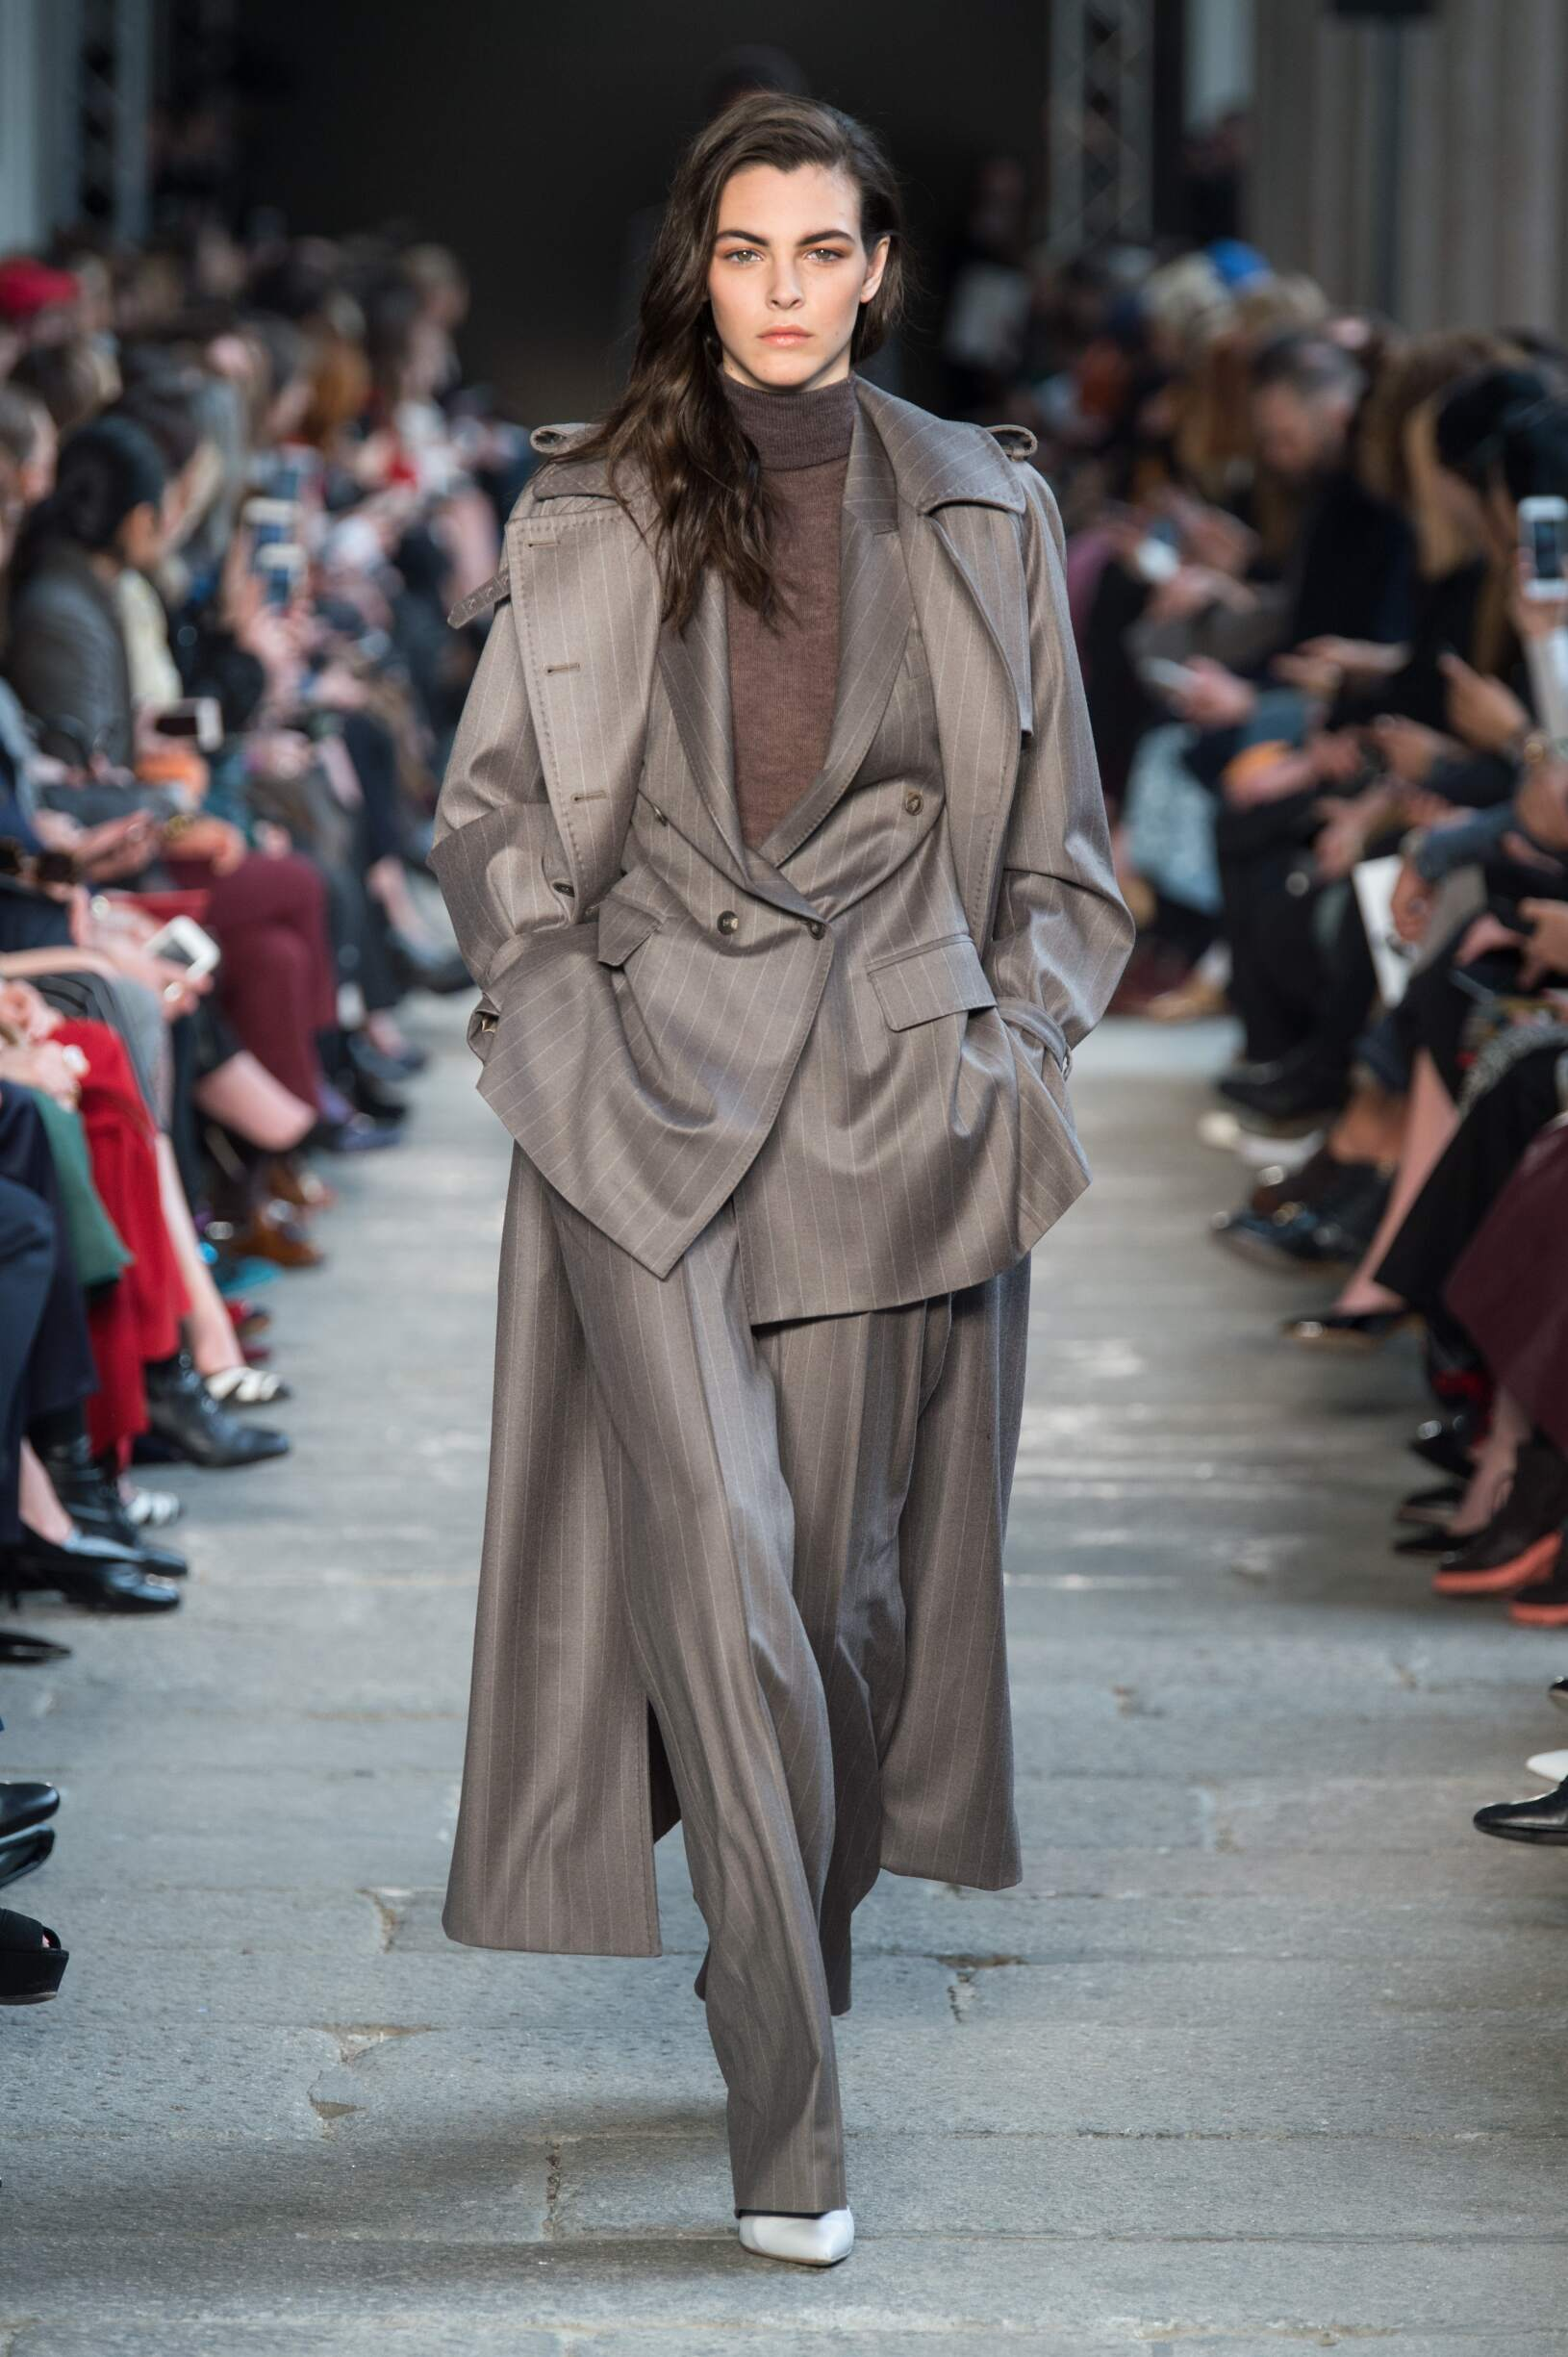 Fashion Woman Model Max Mara Catwalk